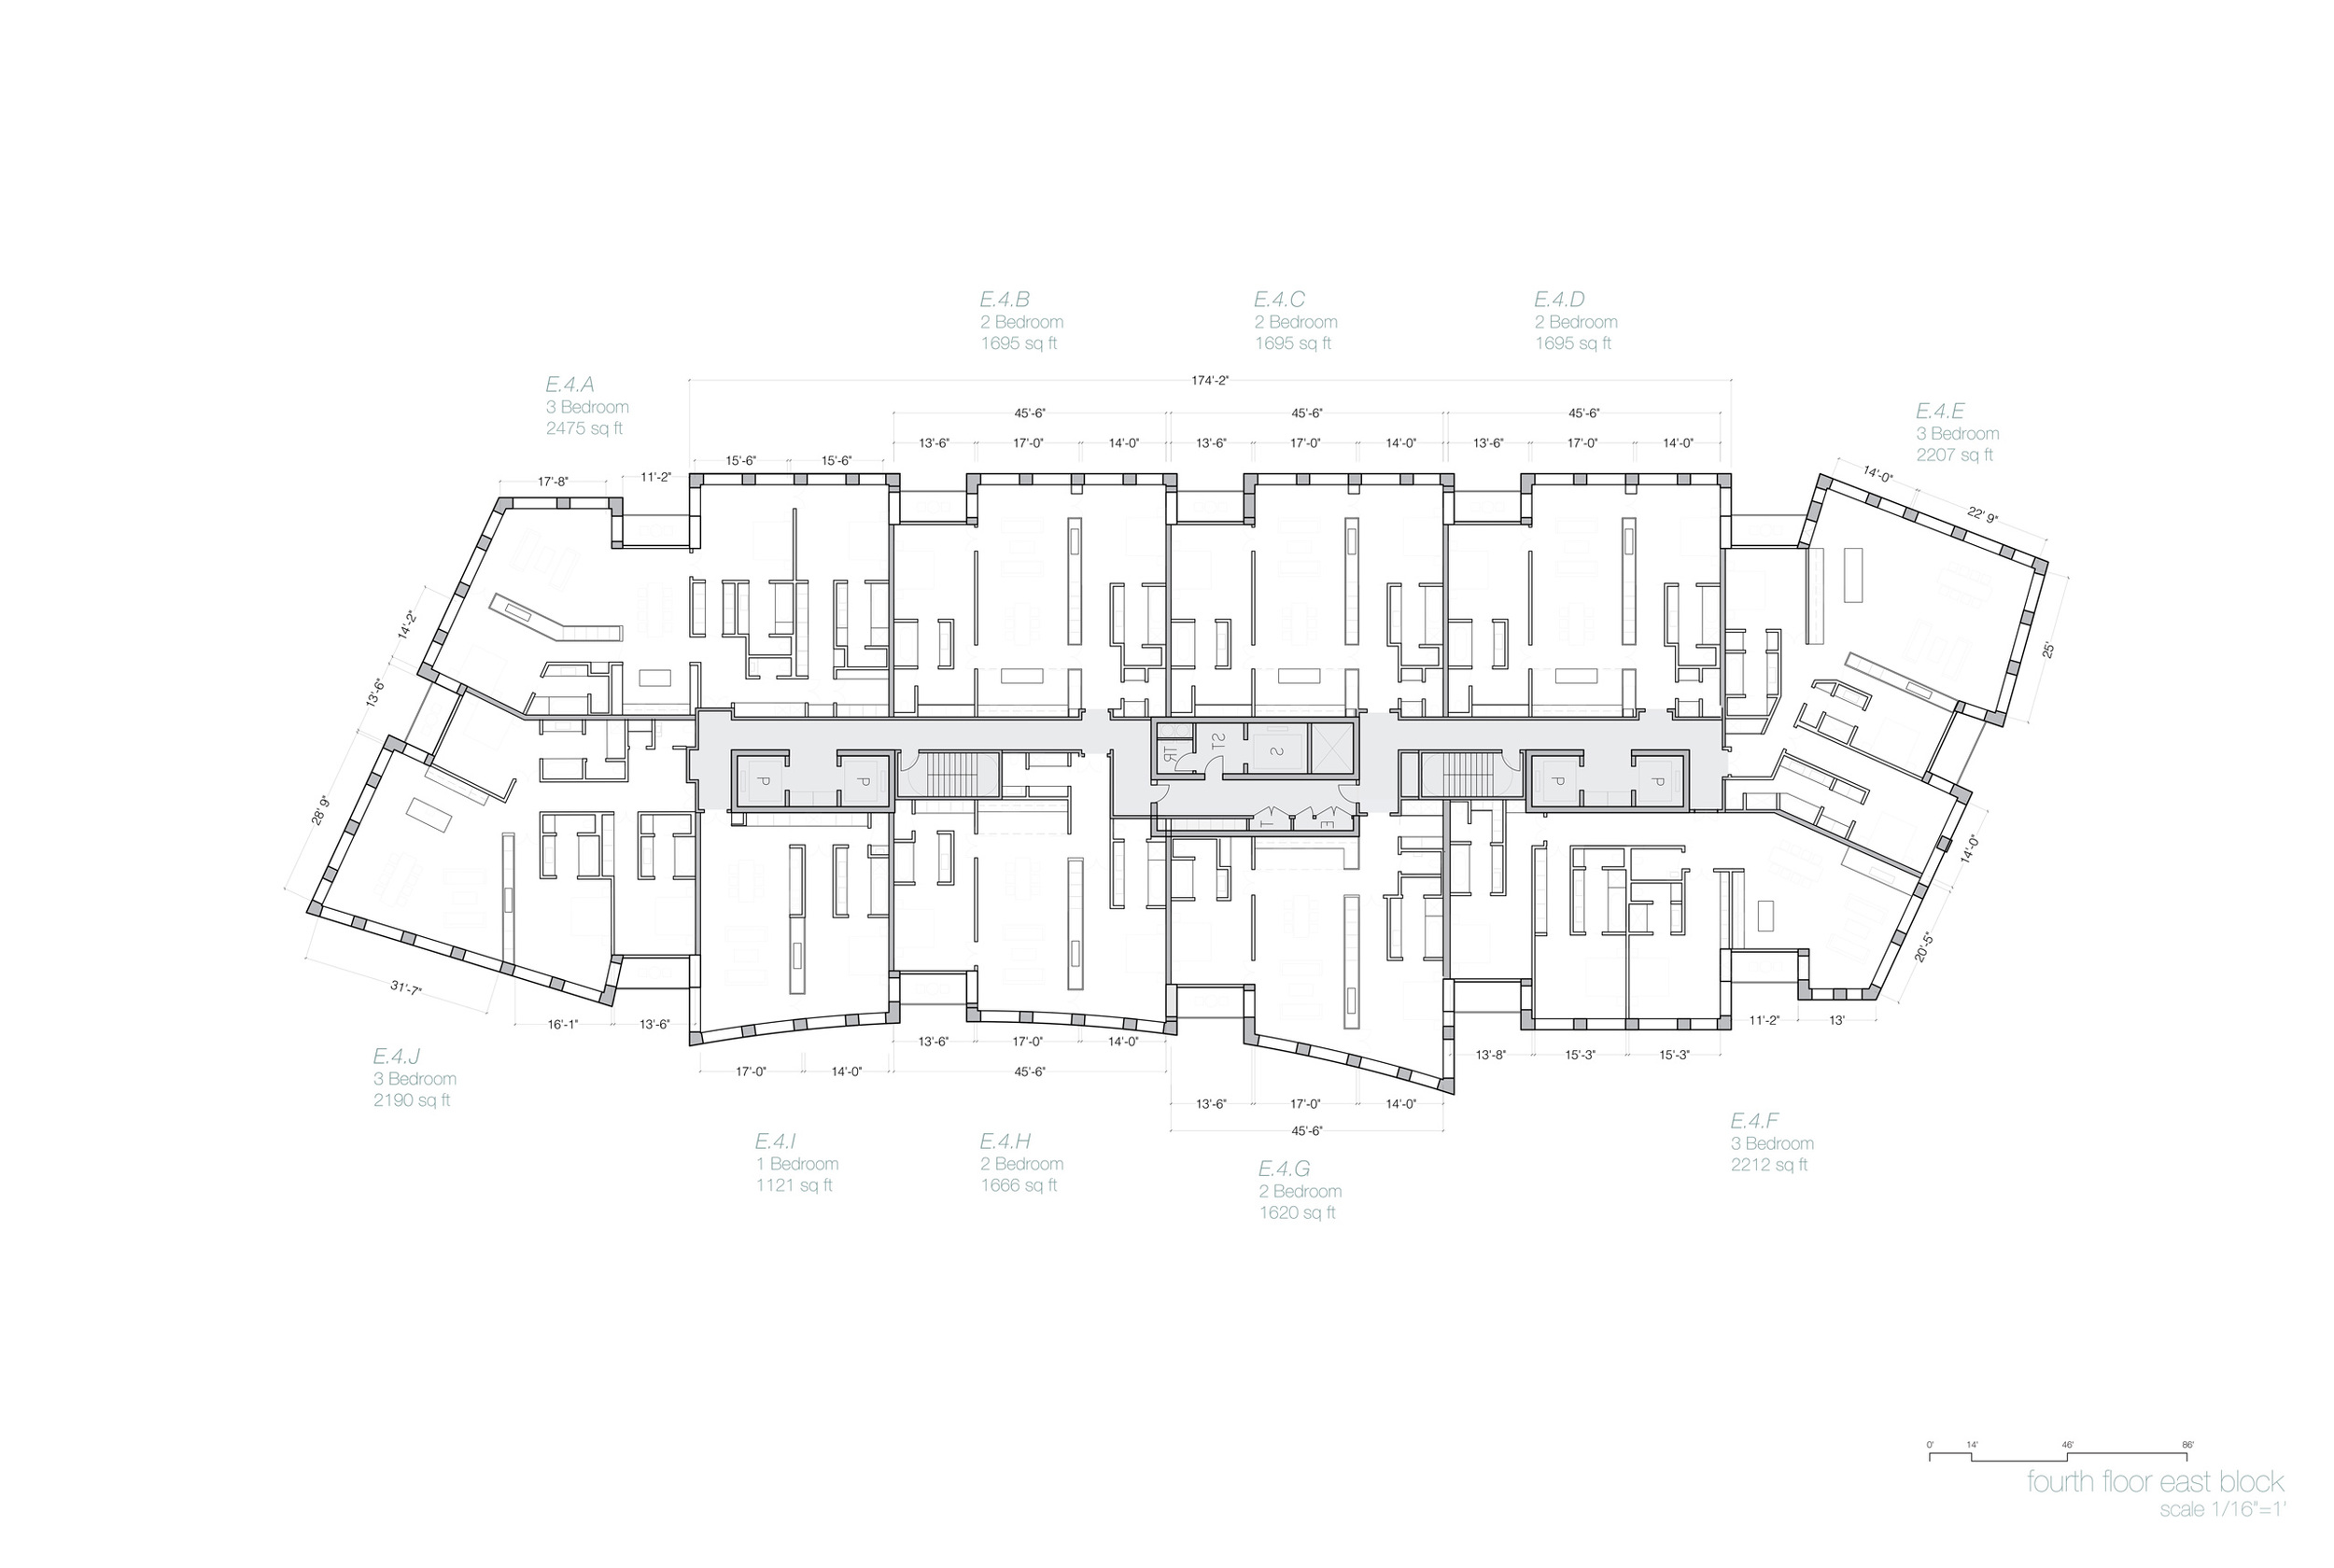 Typical Plan, East Building